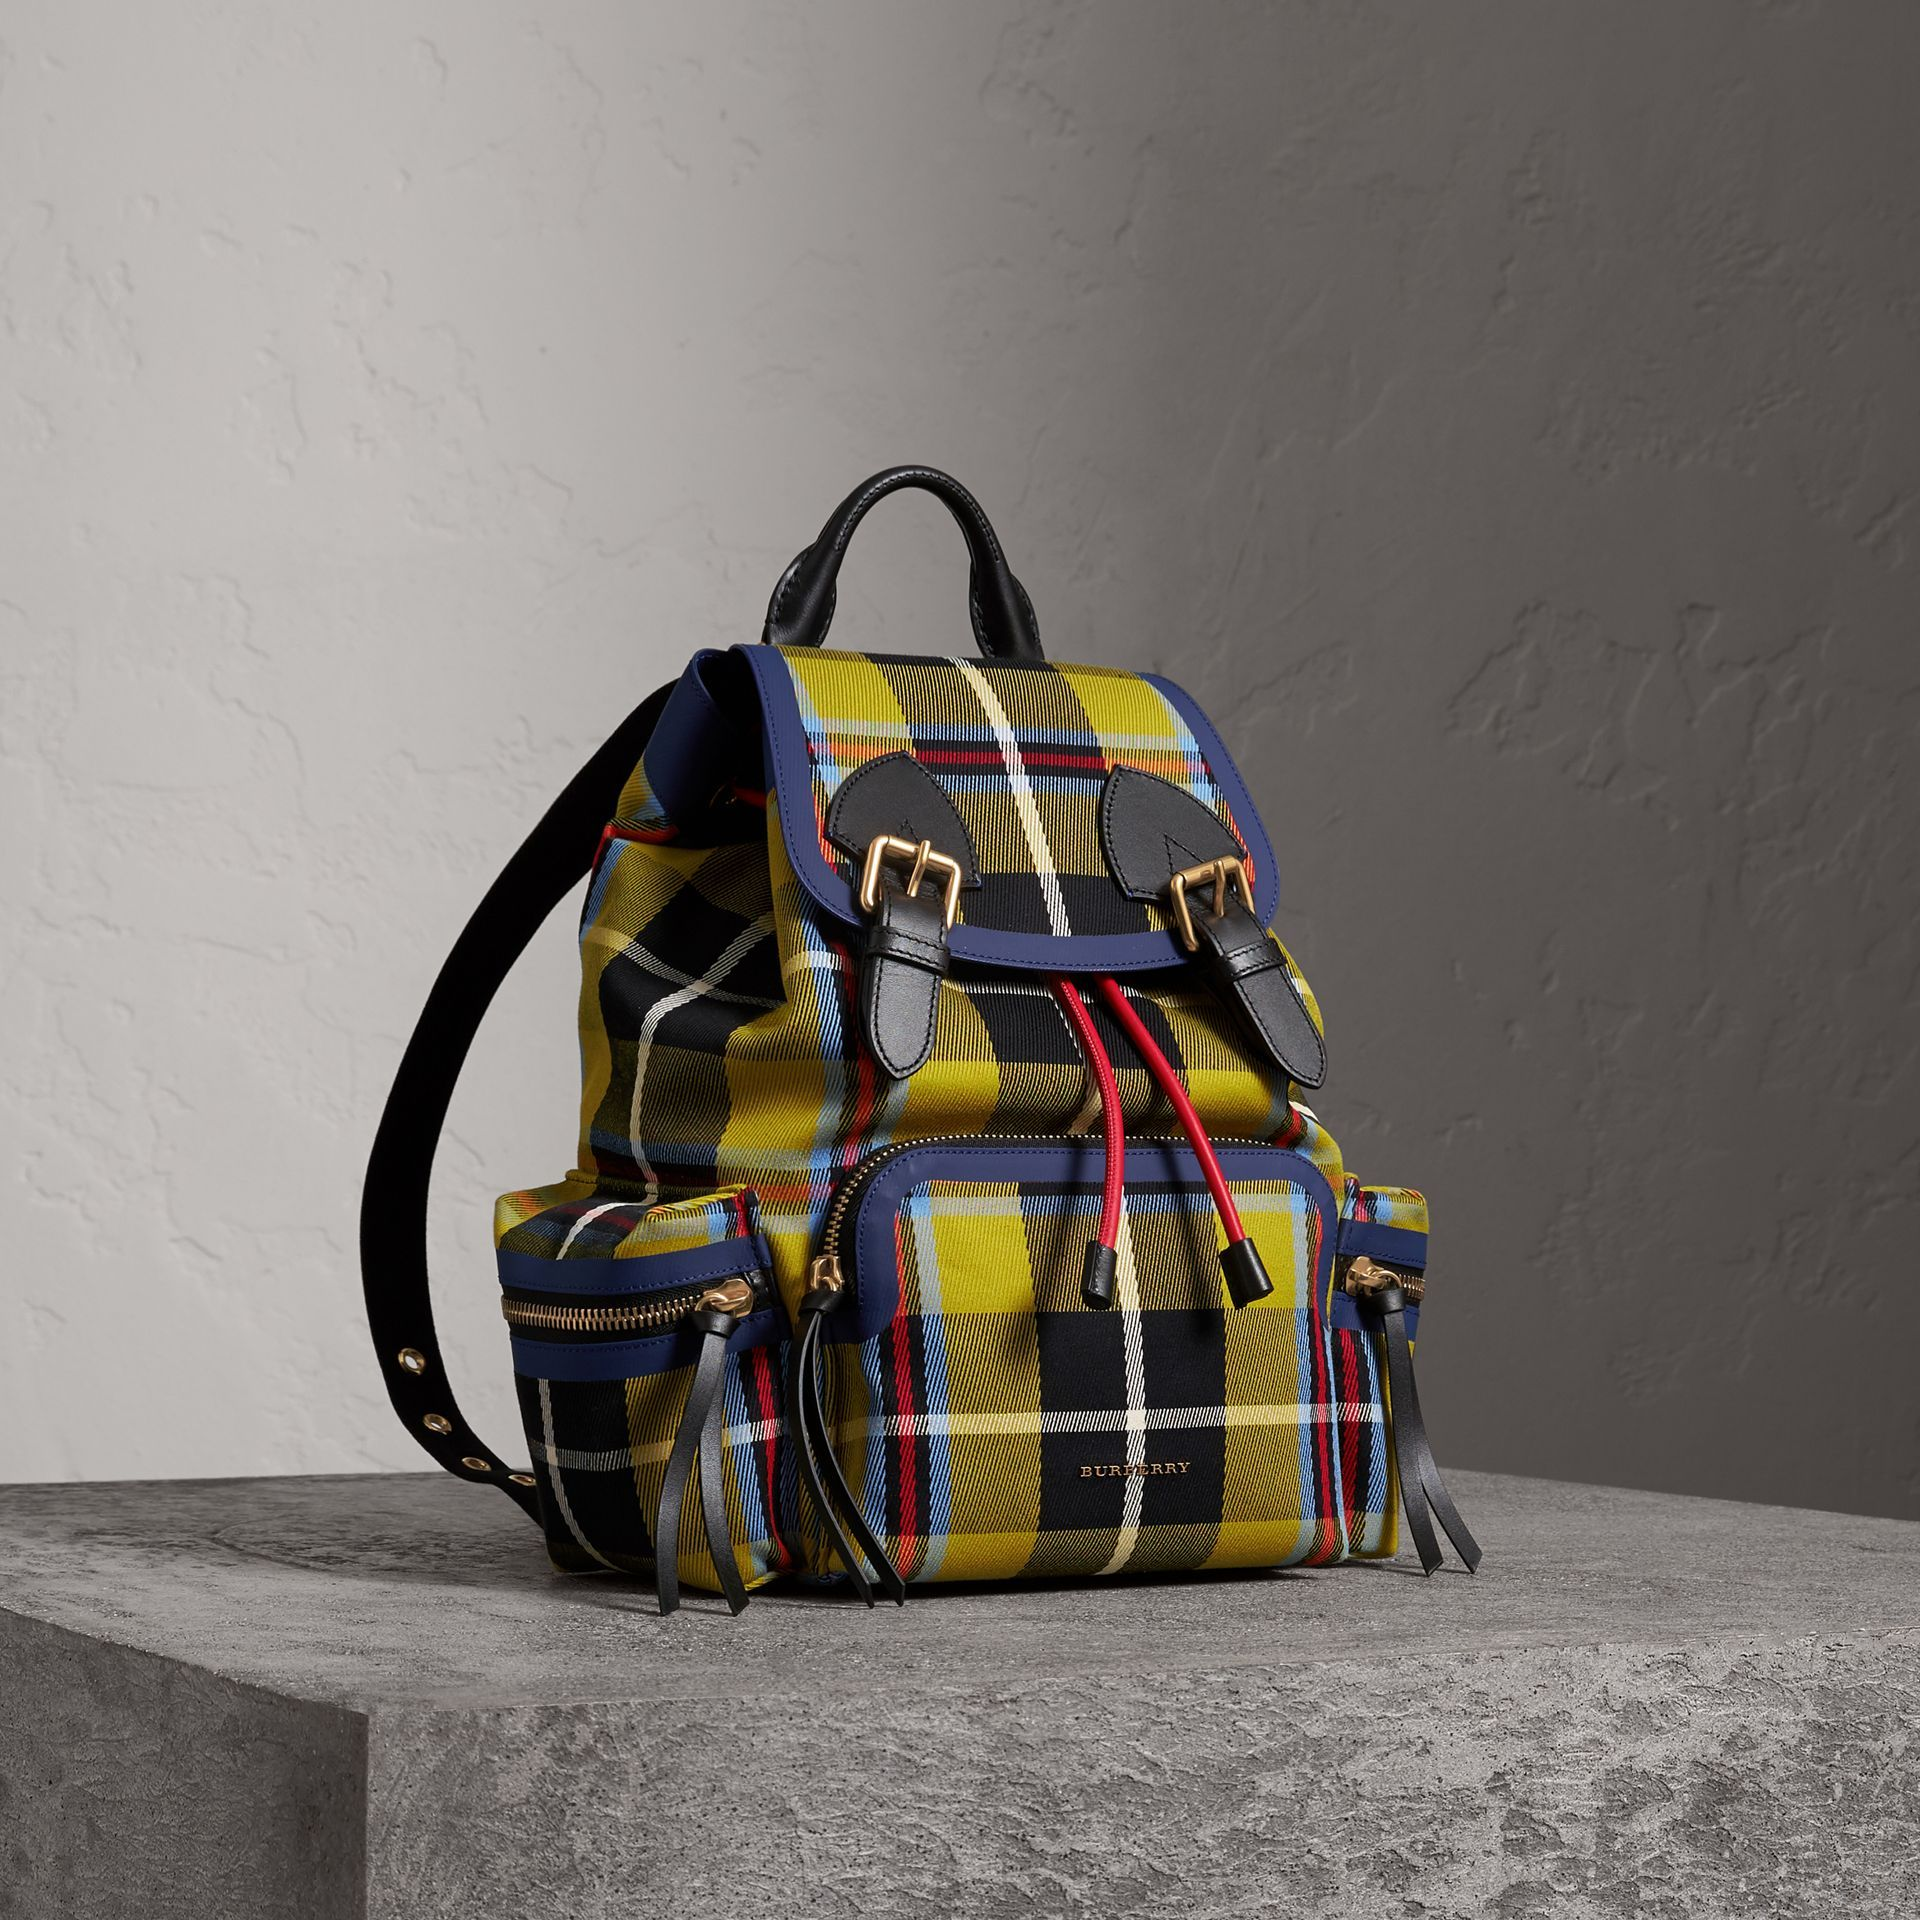 401f2cfca BURBERRY The Medium Rucksack in Tartan and Vintage Check. #burberry #bags  #canvas #leather #lining #shoulder bags #hand bags #cotton #